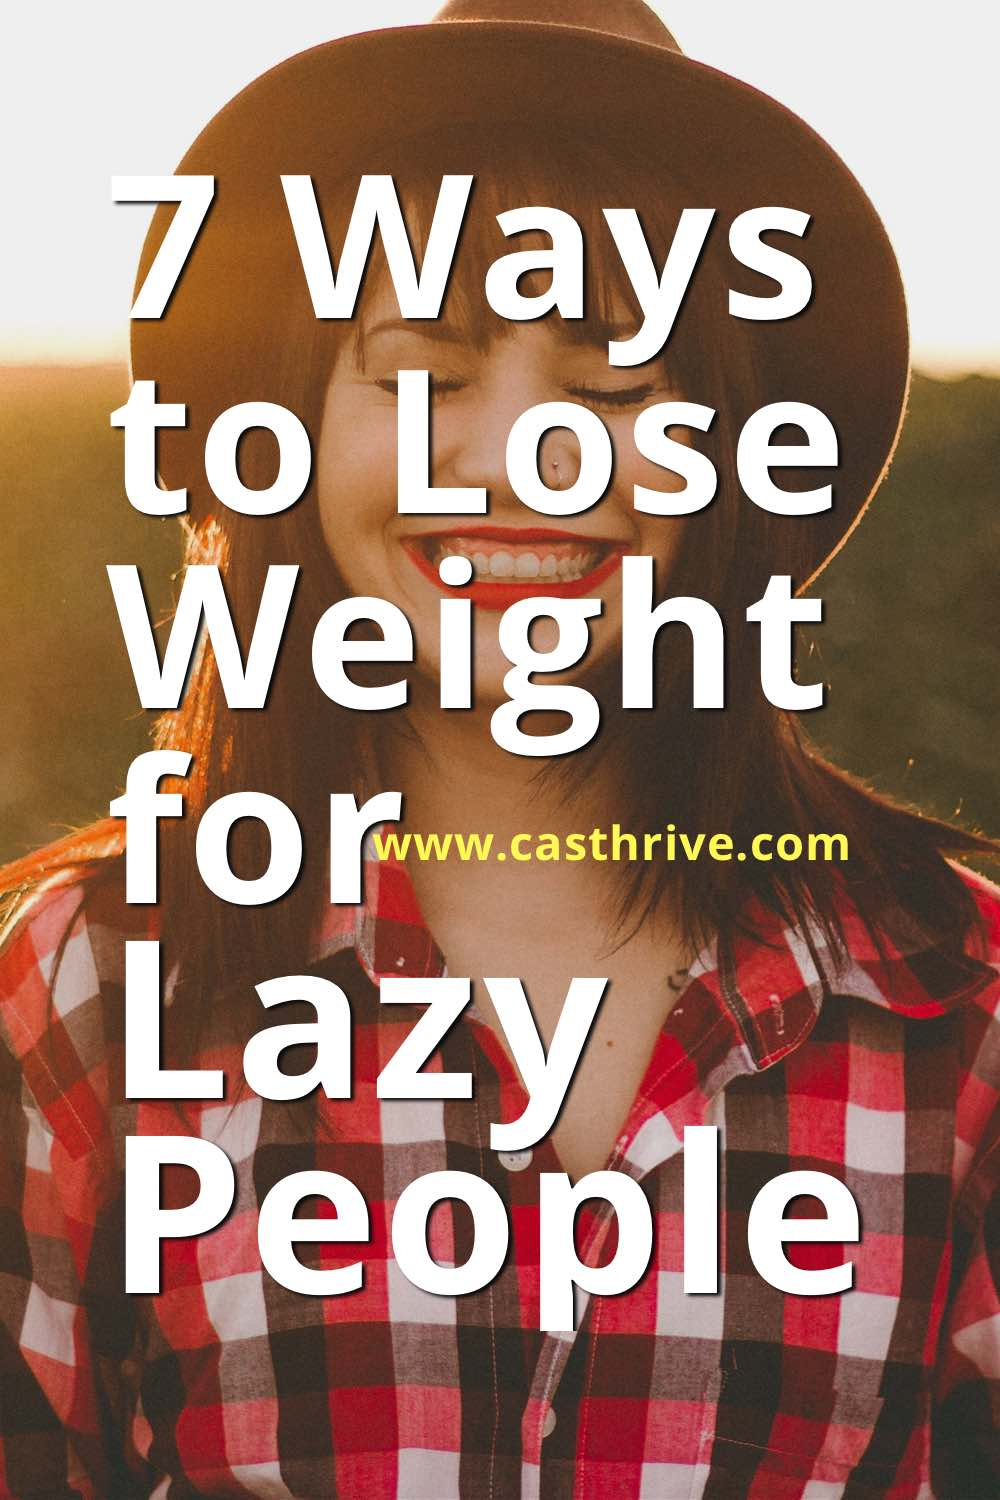 The lazy ways to lose weight.